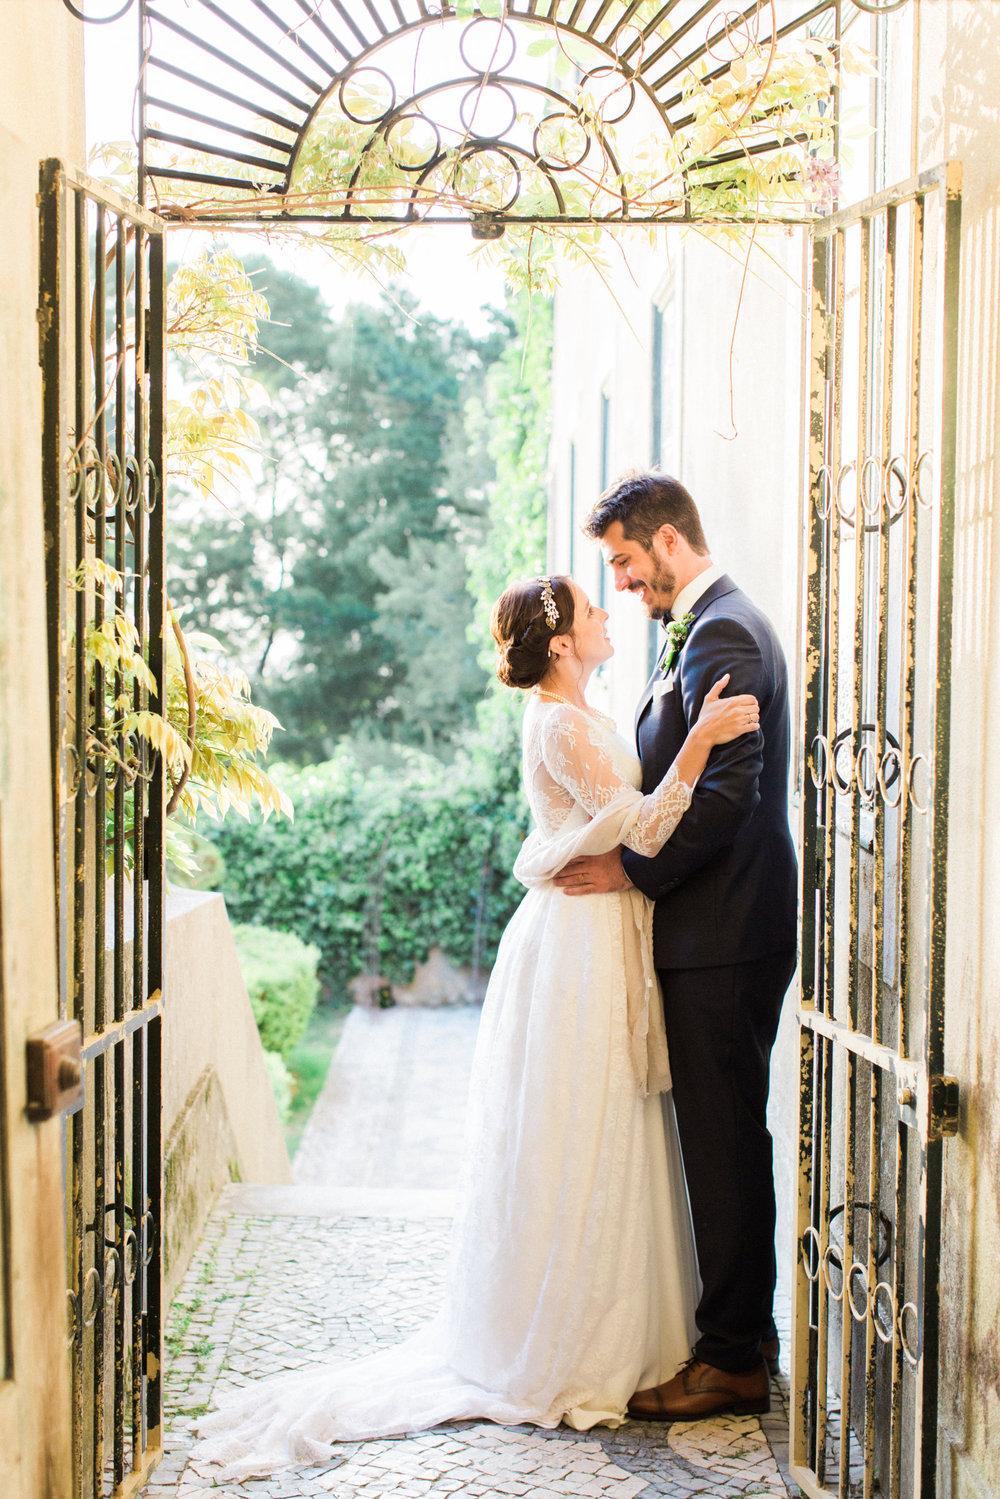 mariaraophotography_weddingsintra-710 web.jpg